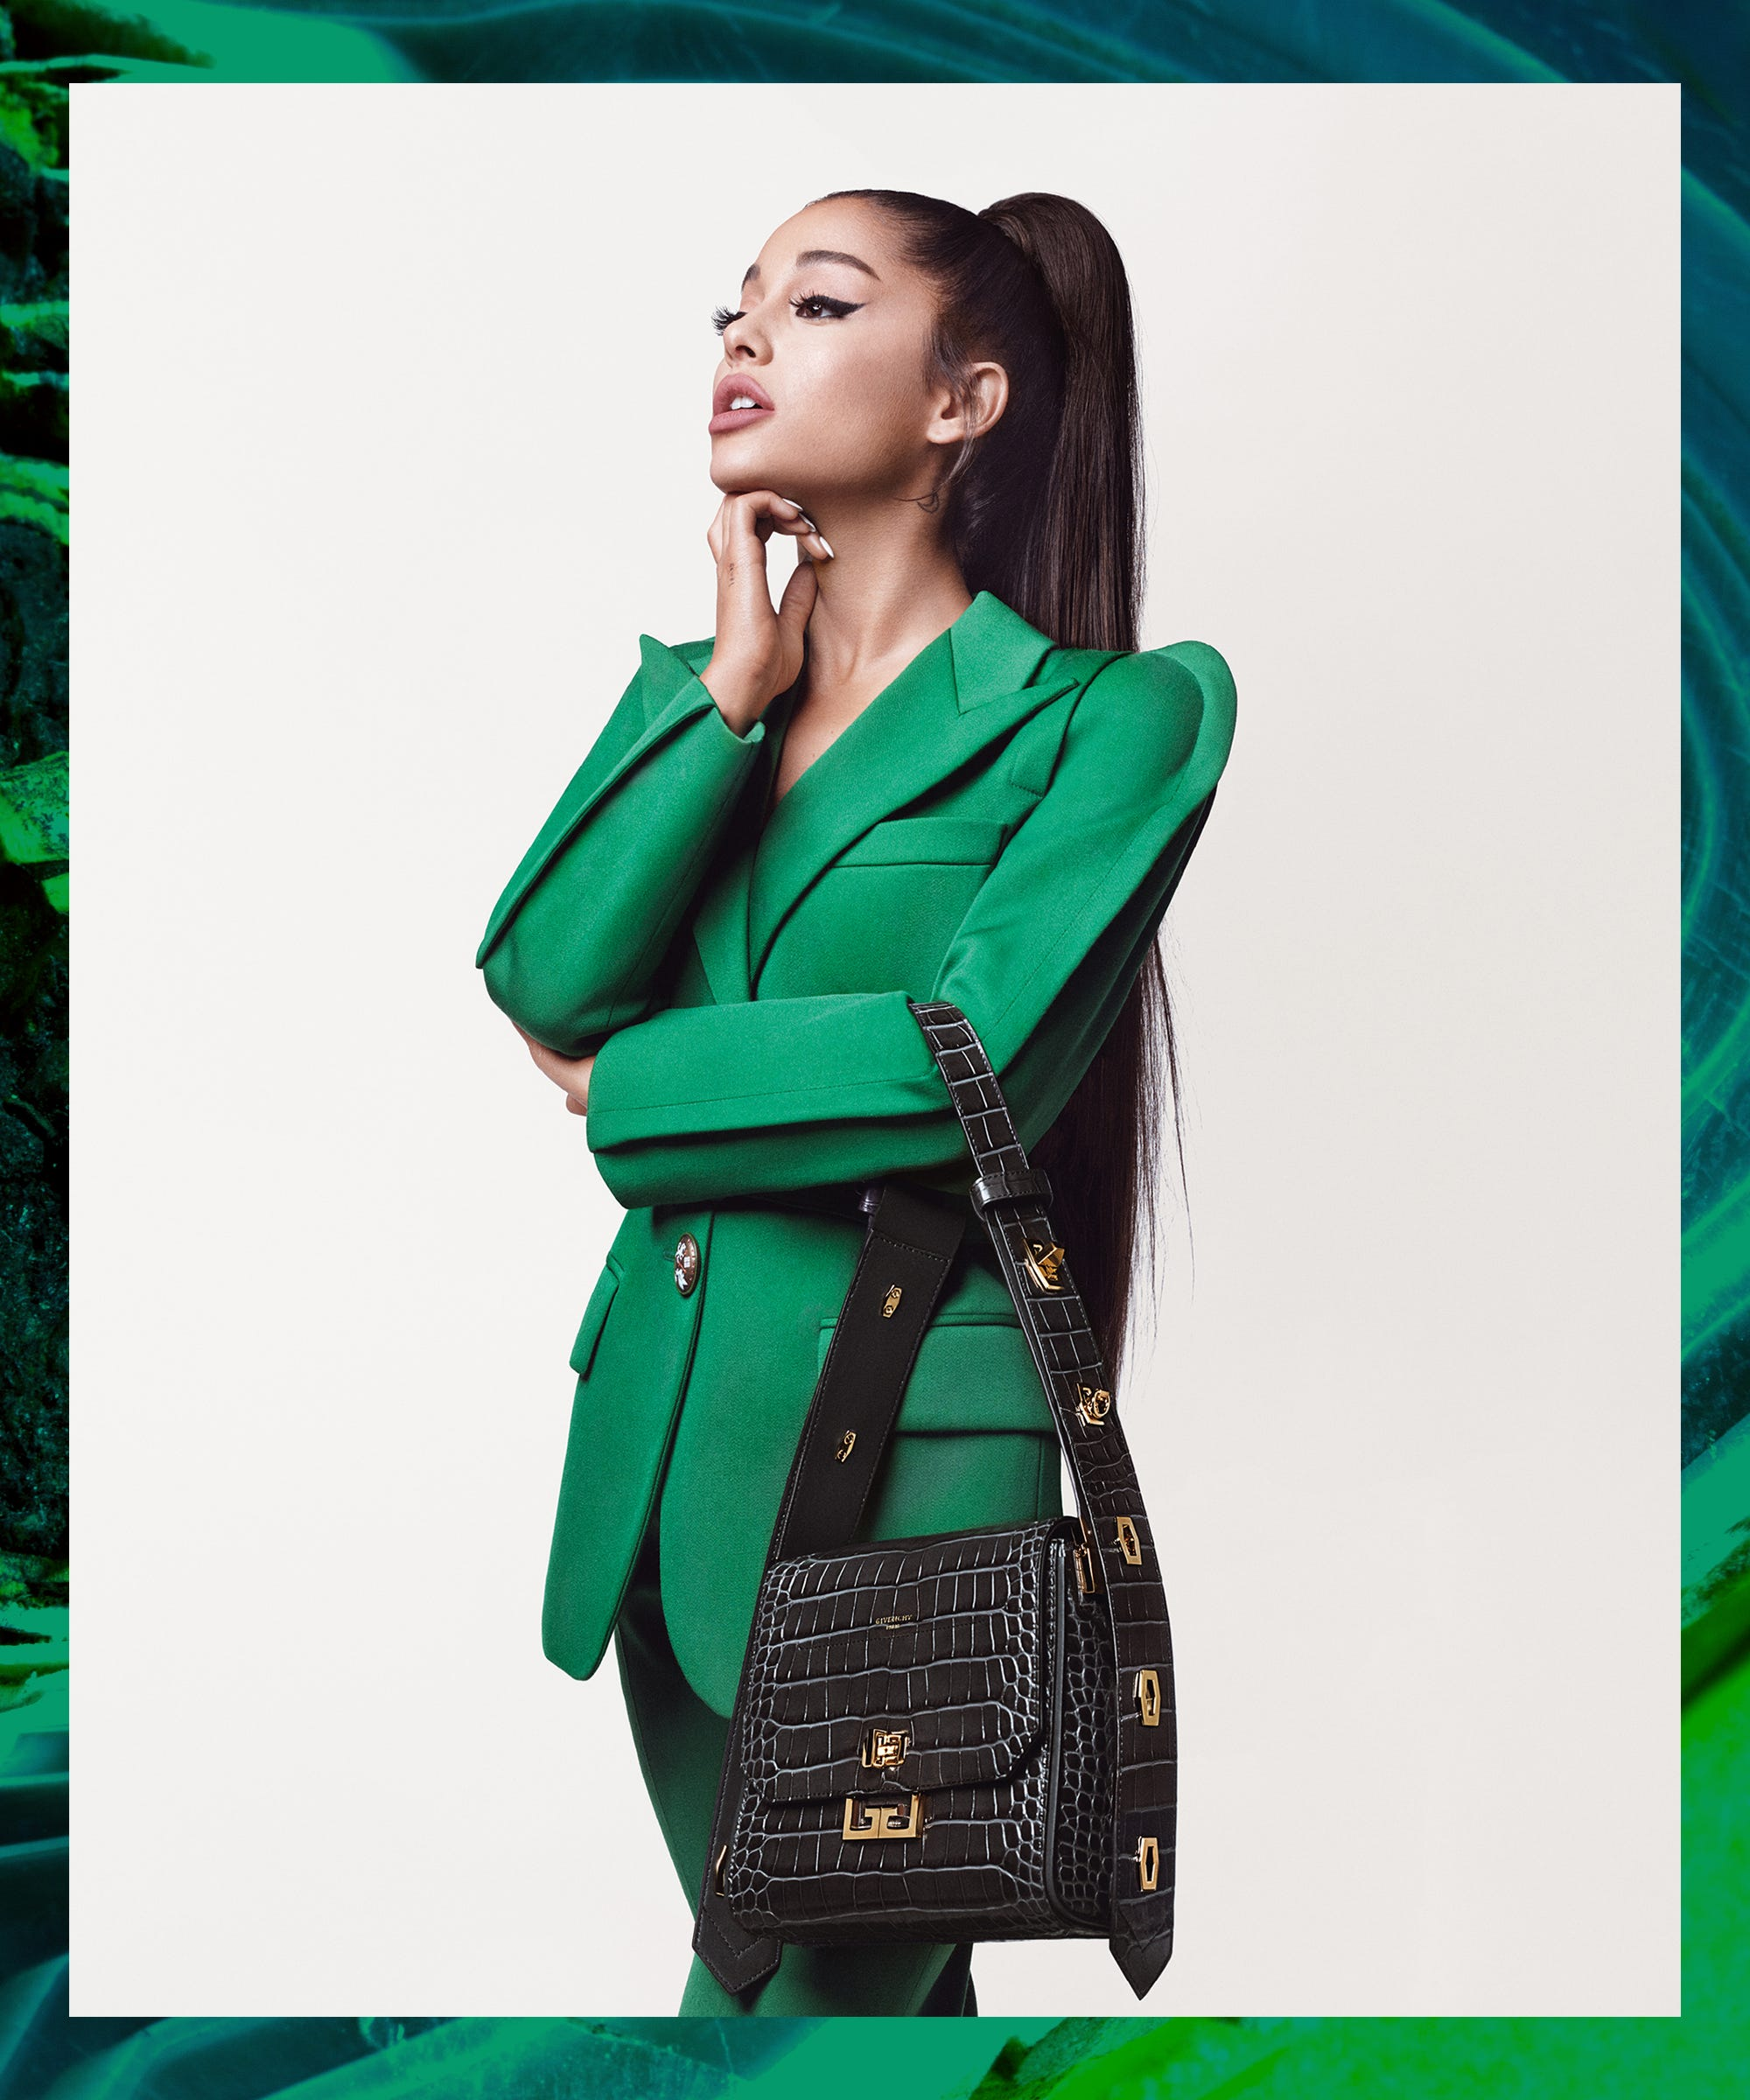 Ariana Grande's First Givenchy Campaign Is Here